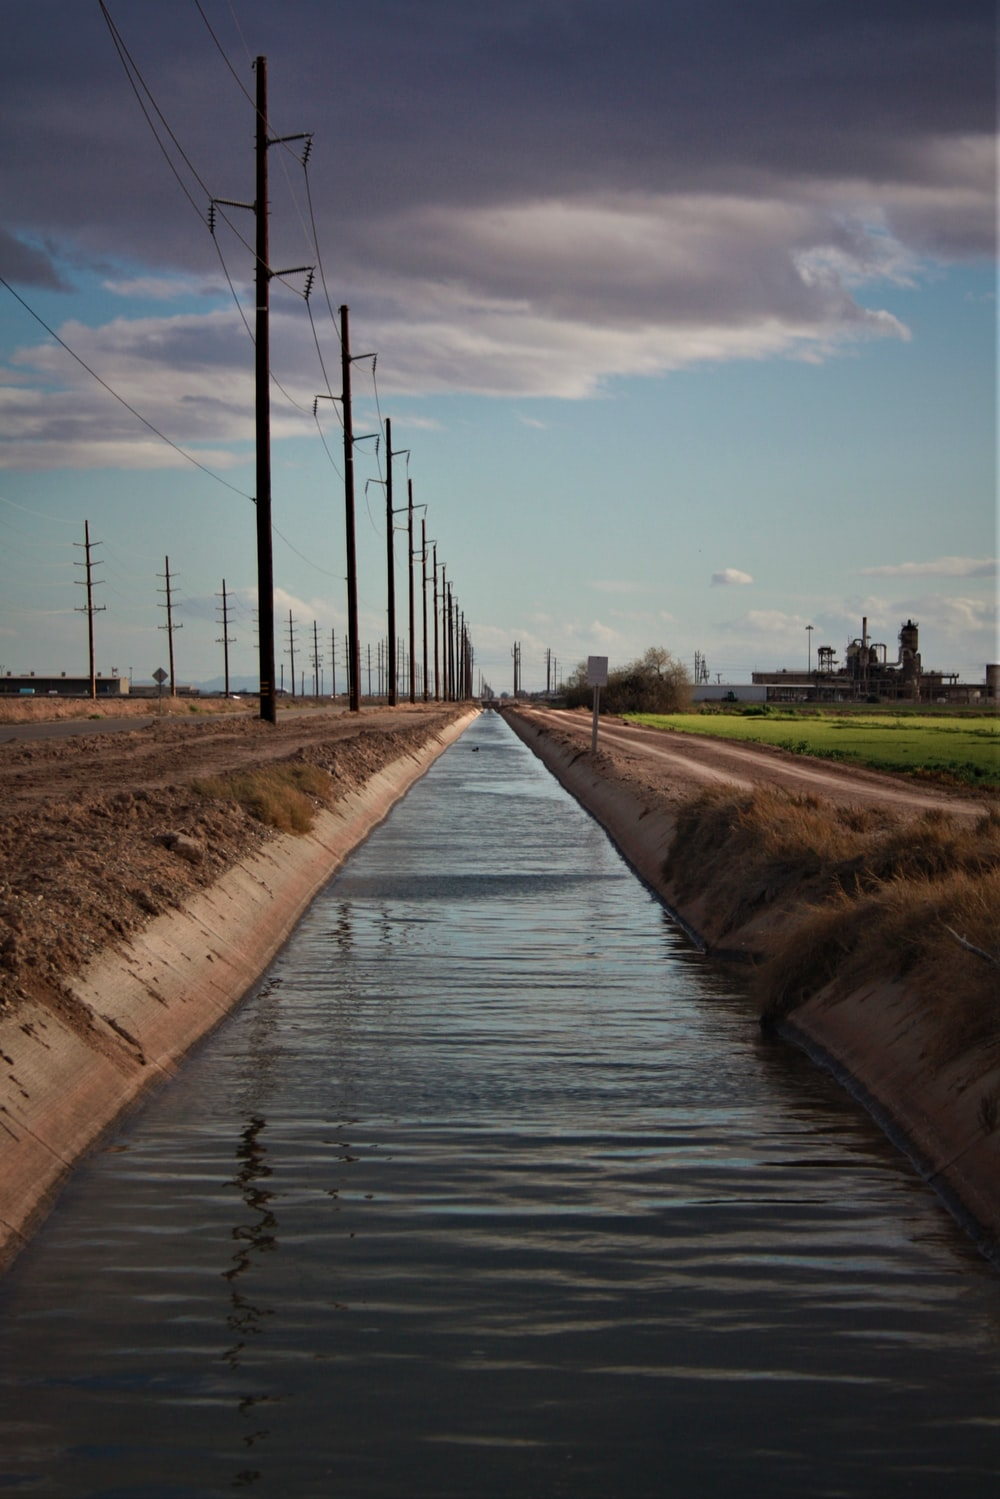 body of water beside electric posts